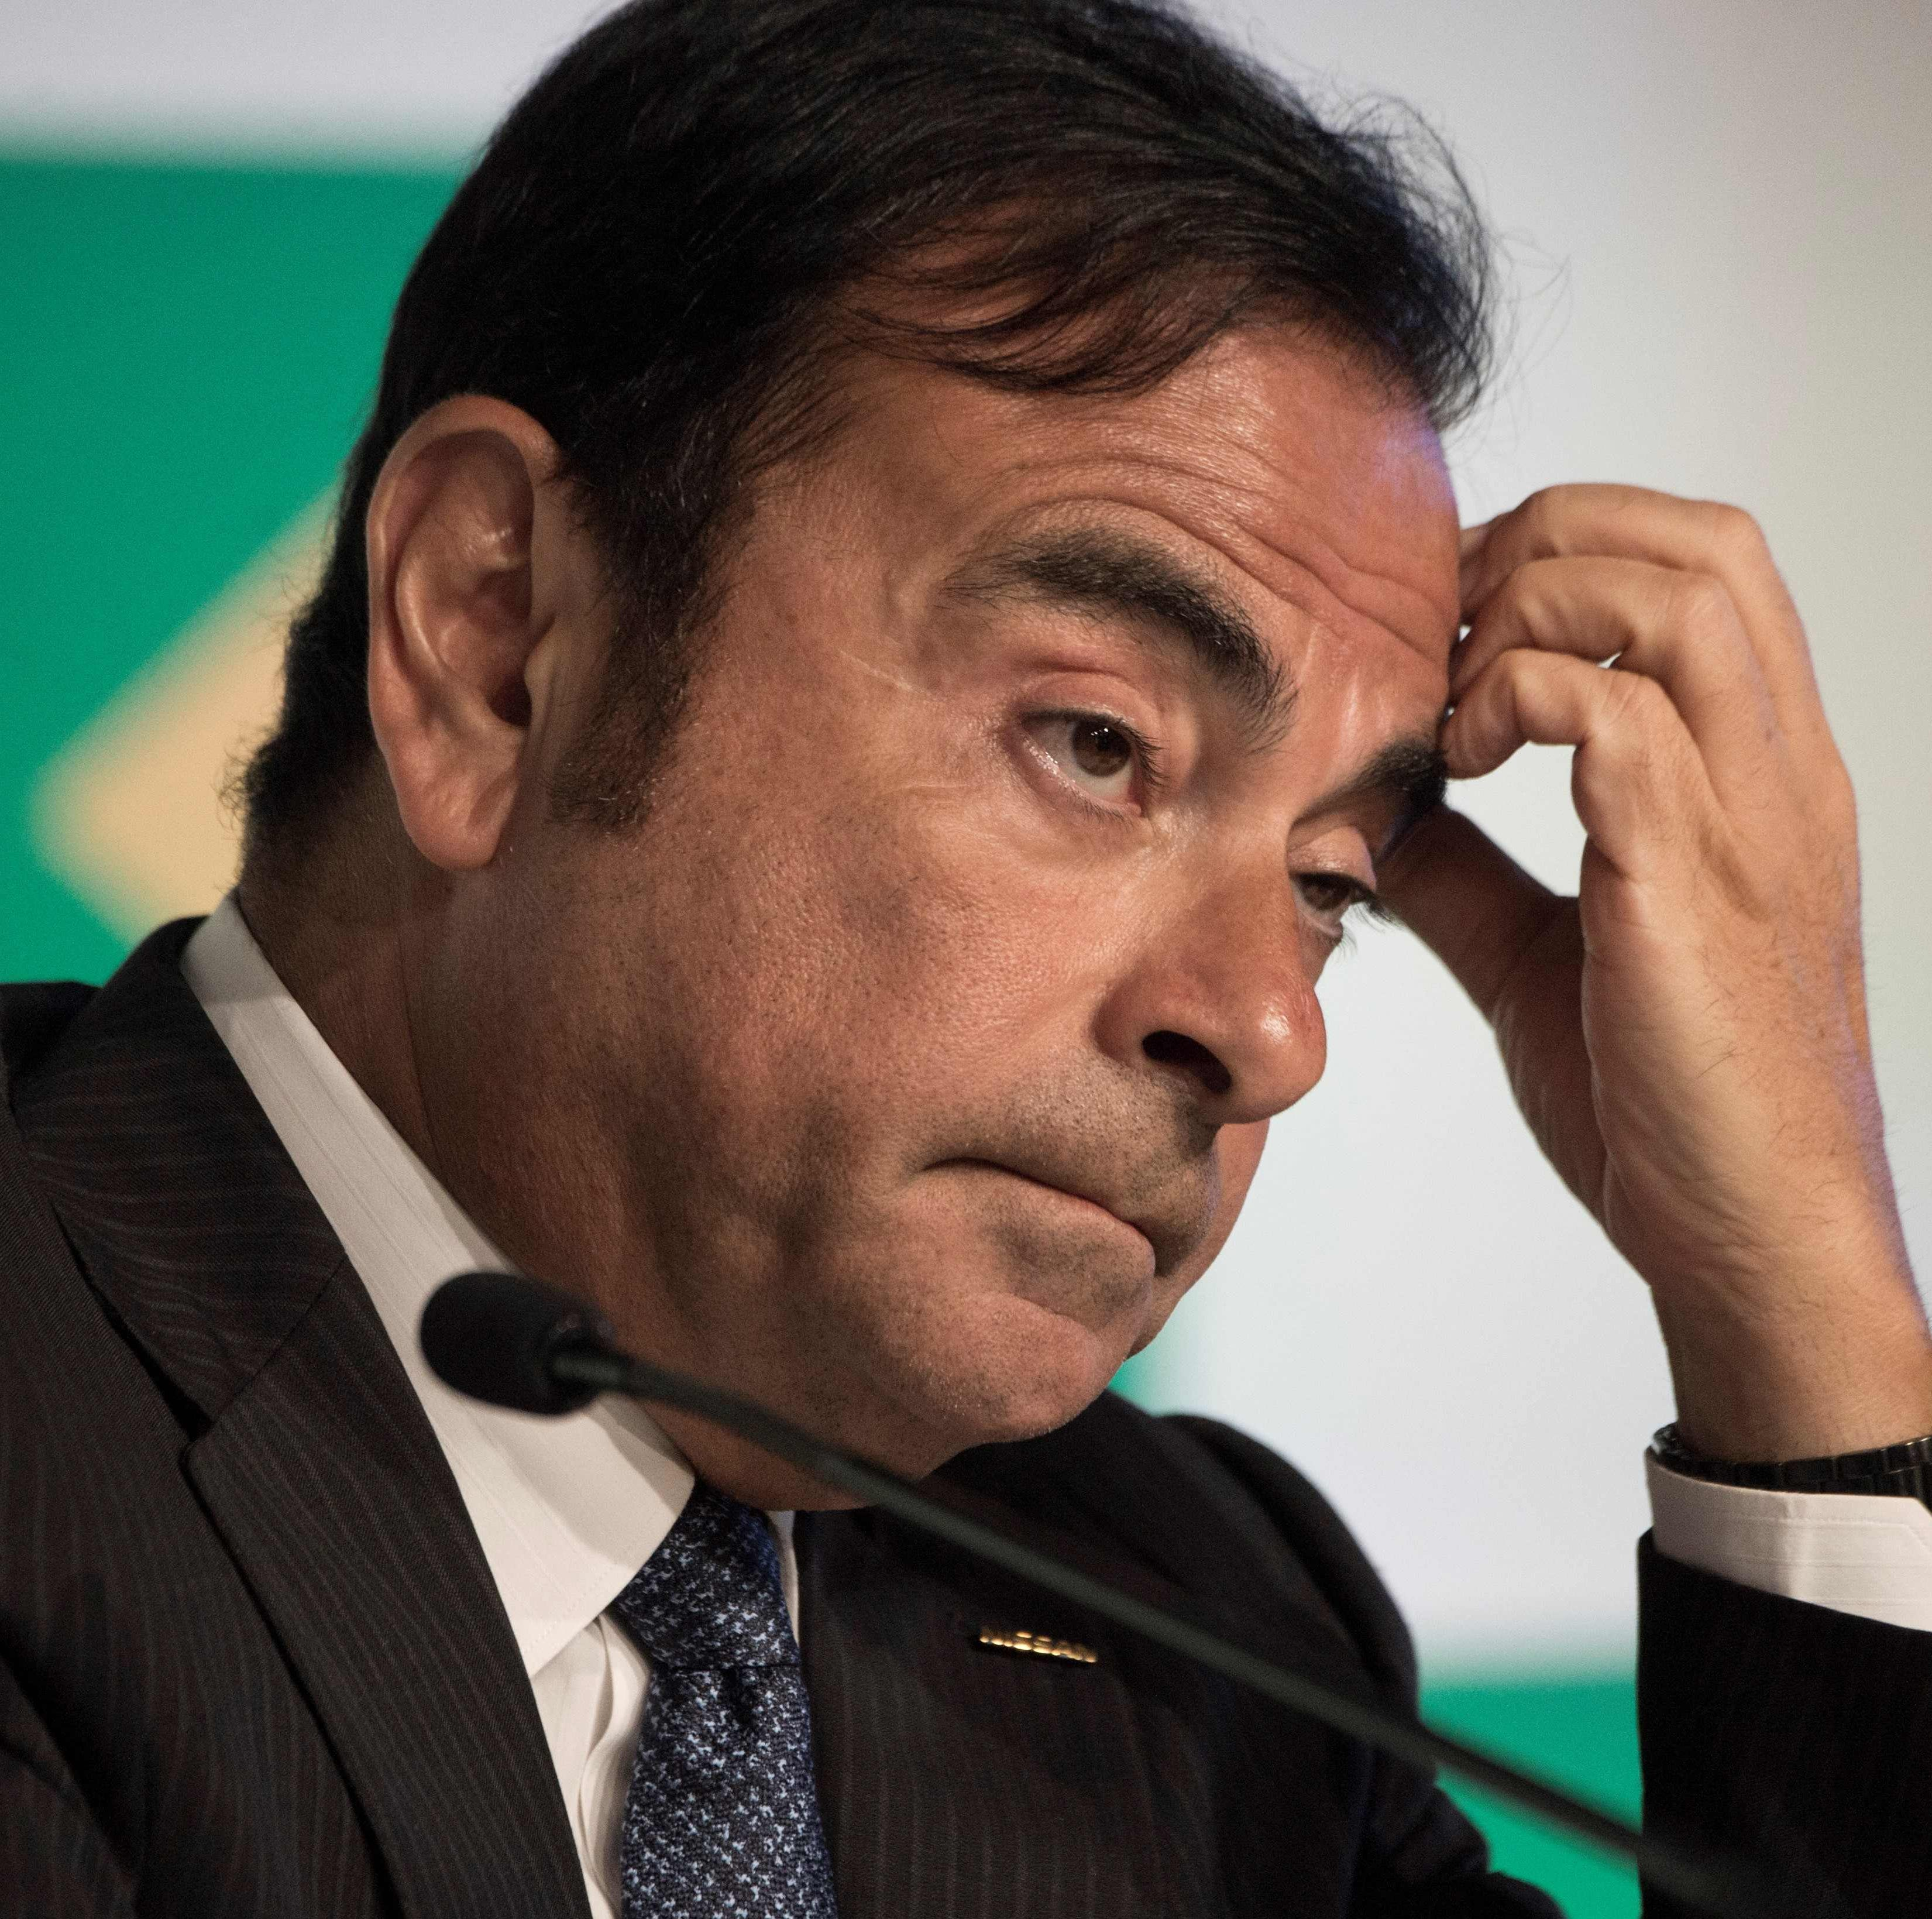 Tokyo court rejects Ex-Nissan chair Ghosn's bail request